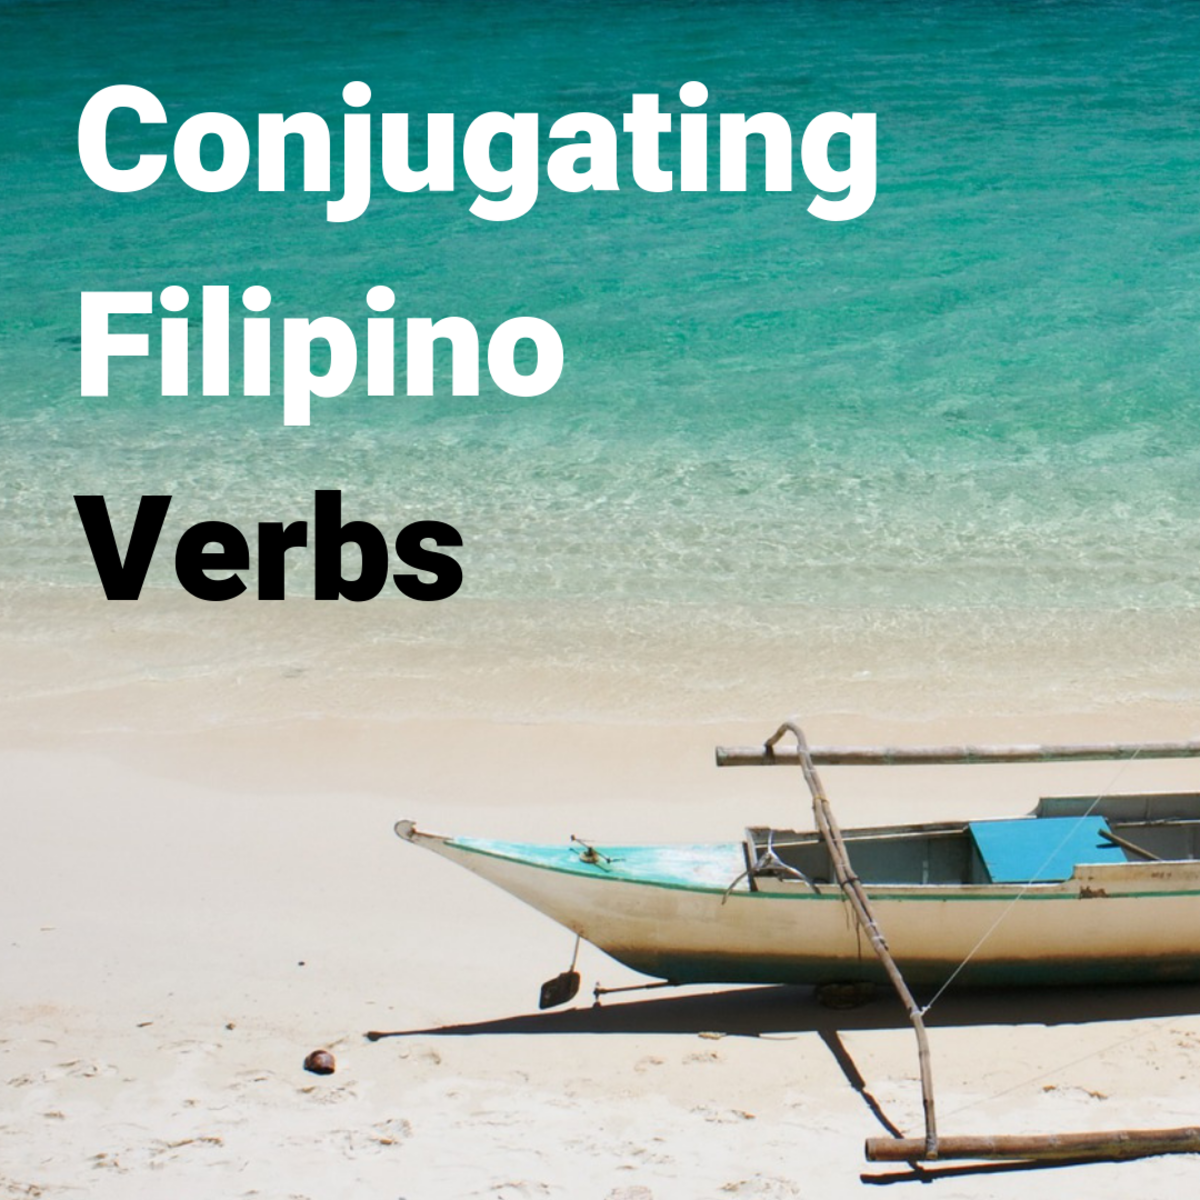 Learn how to form Filipino verbs in the present, past, future and imperative.